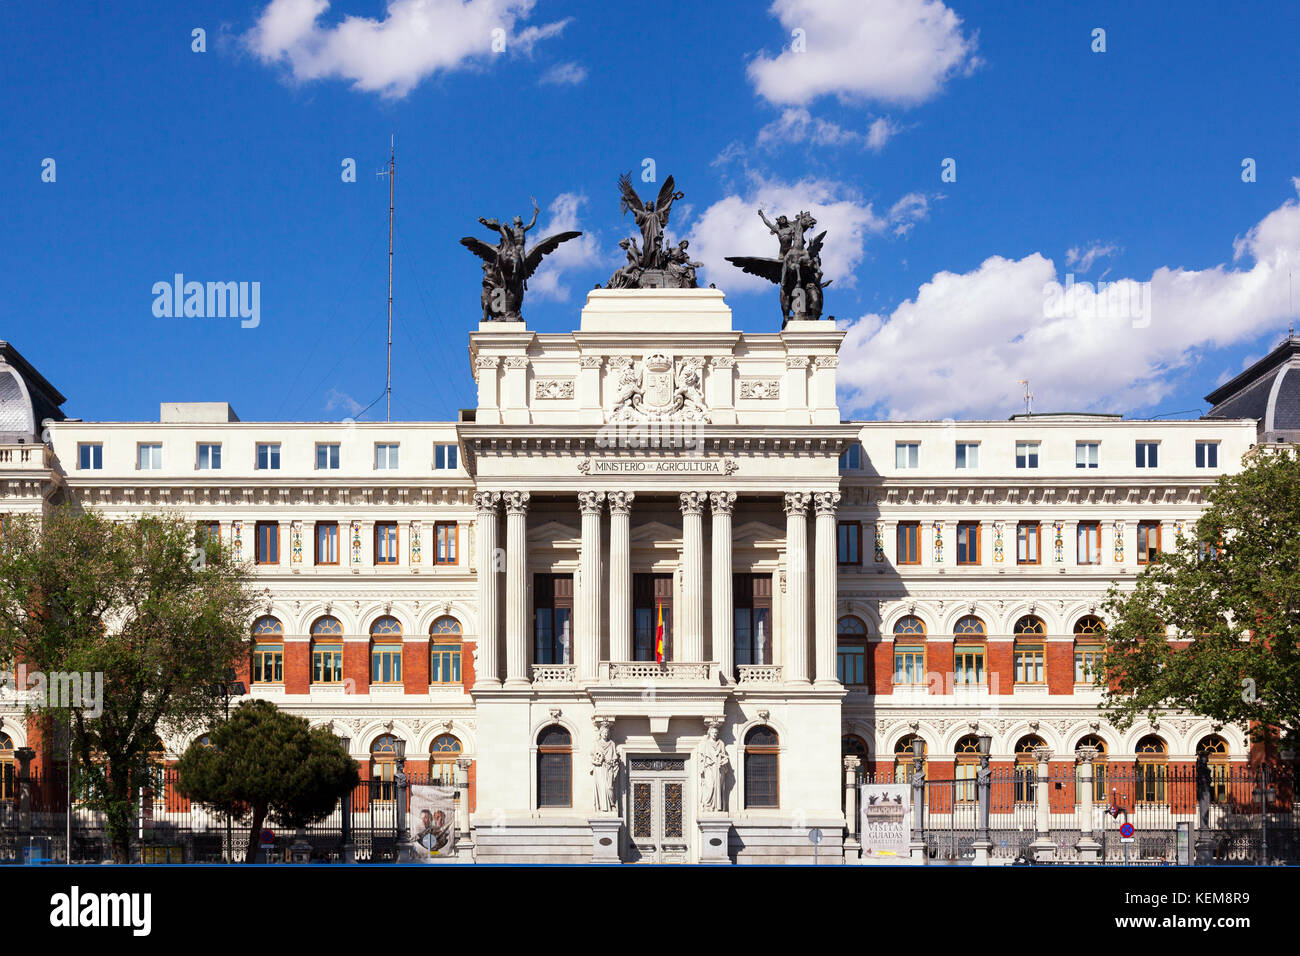 Department of agriculture in Madrid, Spain - Stock Image